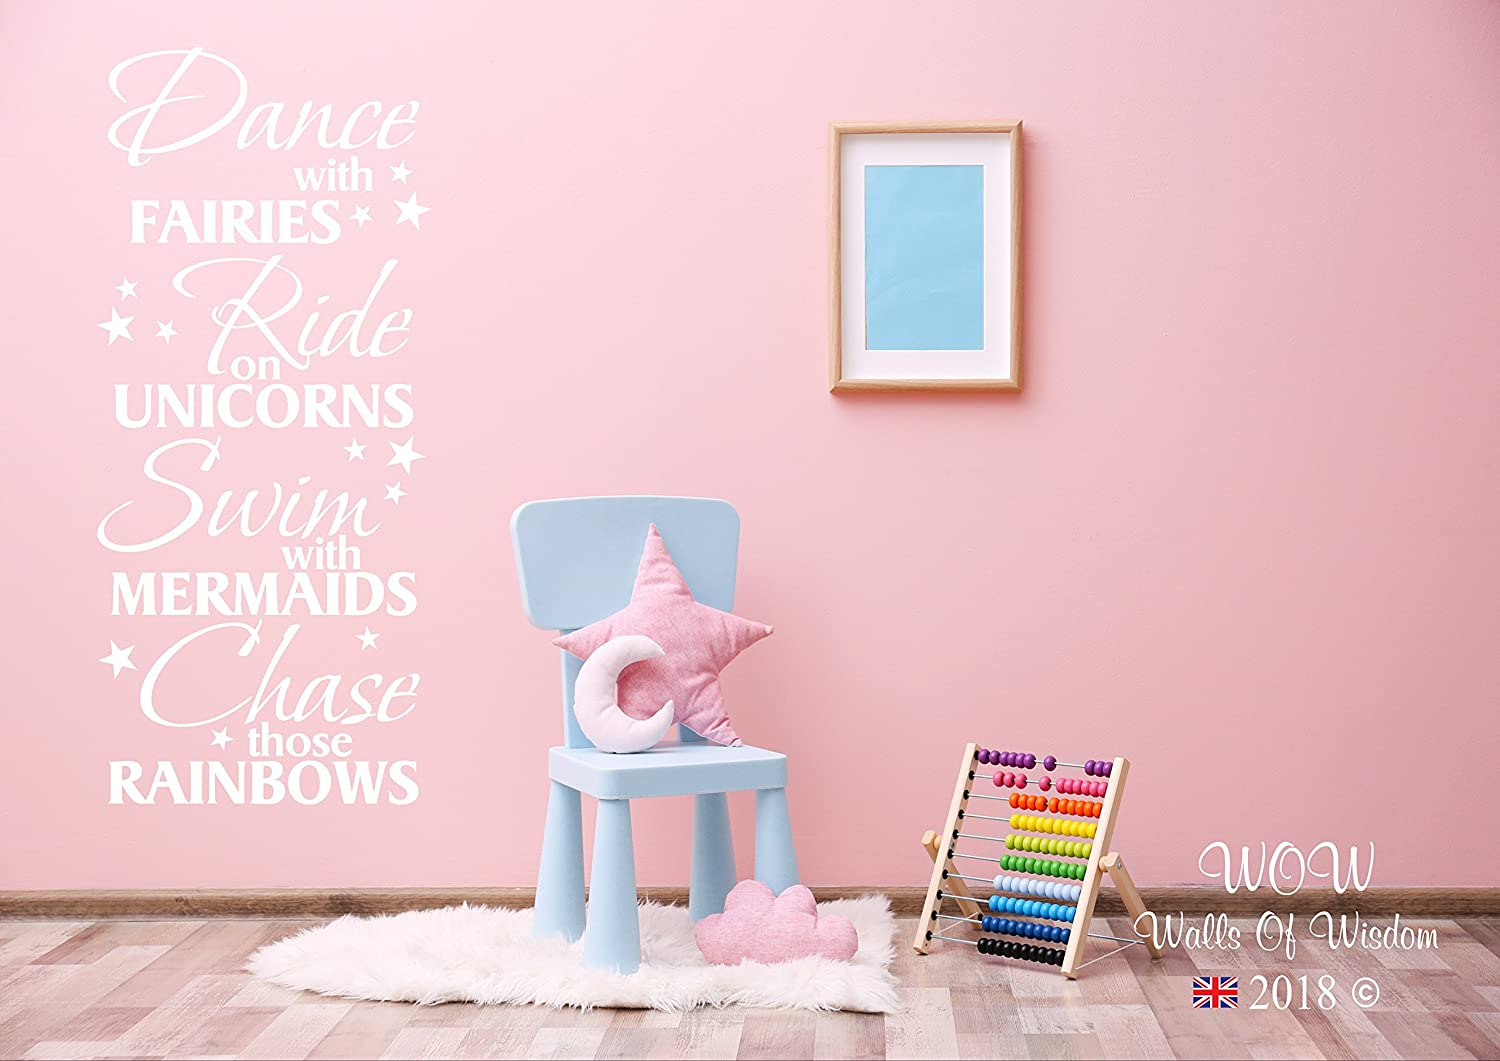 Dance With Fairies, Ride Unicorns, Swim with Mermaids, Chase Rainbows Wall Sticker Wall Art Decal Childrens, Girls Bedroom, Easy to Apply, Free Applicator (90x54cm, Silver) Walls of Wisdom